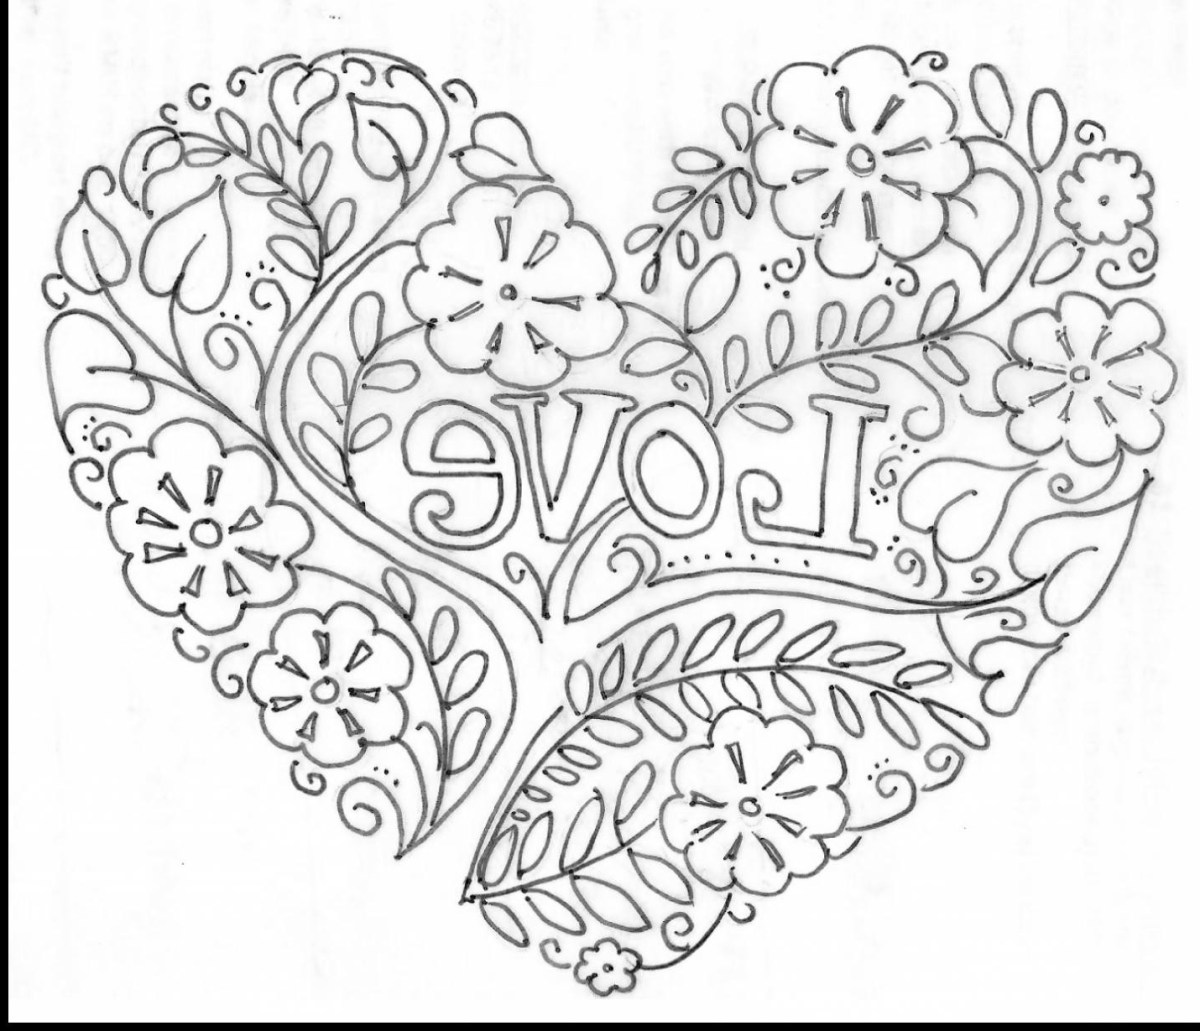 Heart Coloring Pages For Adults Heart Coloring Pages For Adults F5to Surprising Valentine Heart